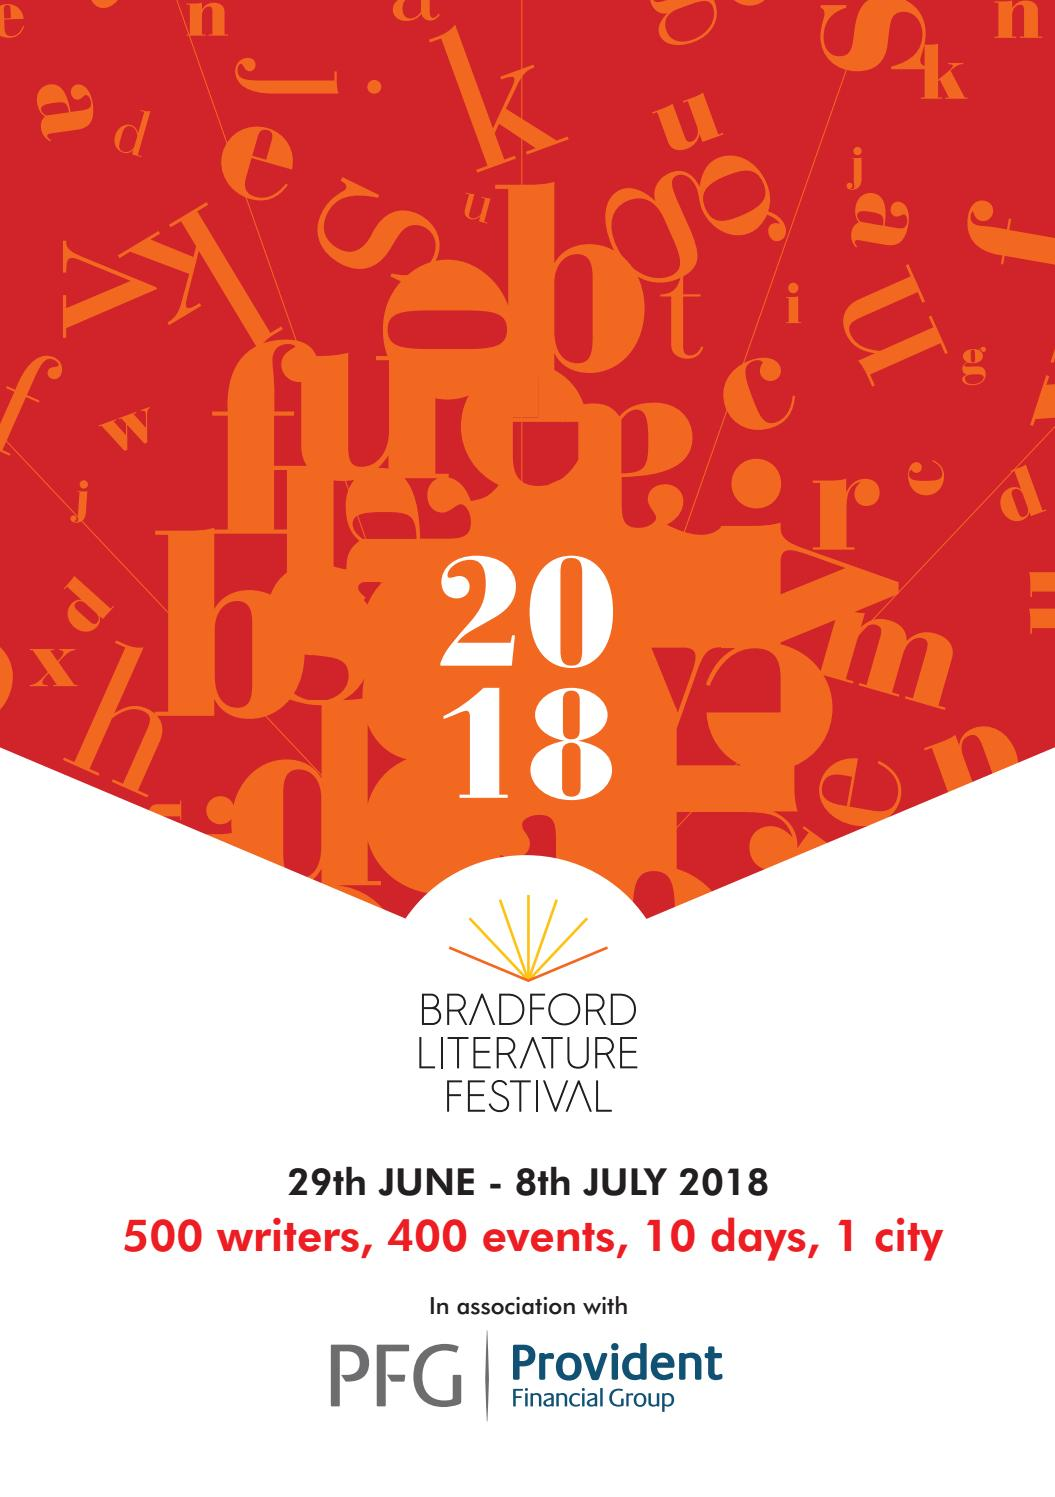 hight resolution of bradford literature festival 2018 programme